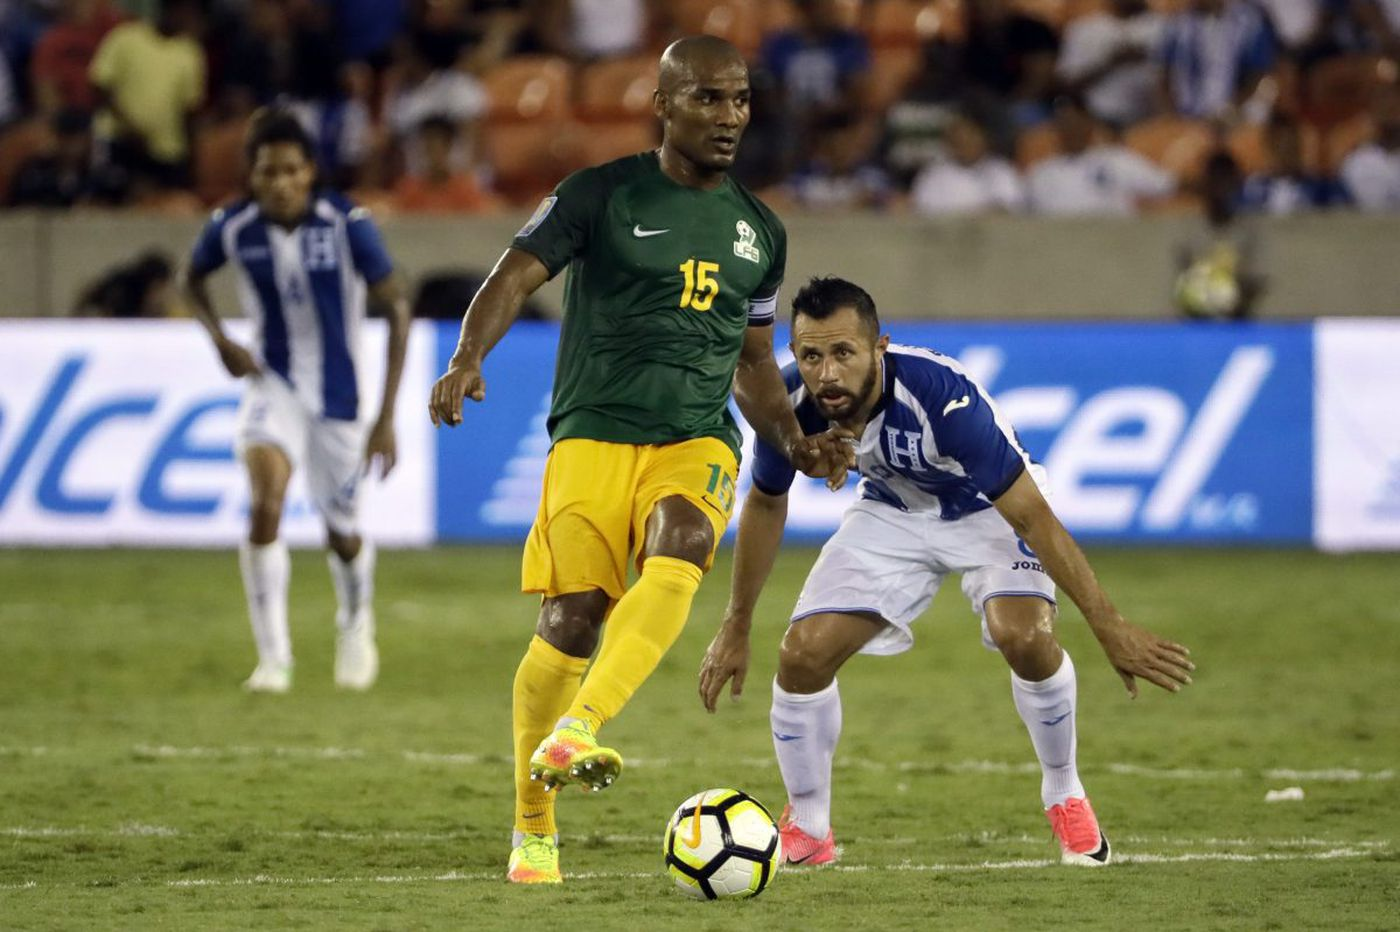 CONCACAF Gold Cup: French Guiana uses ineligible player vs. Honduras; Canada ties Costa Rica